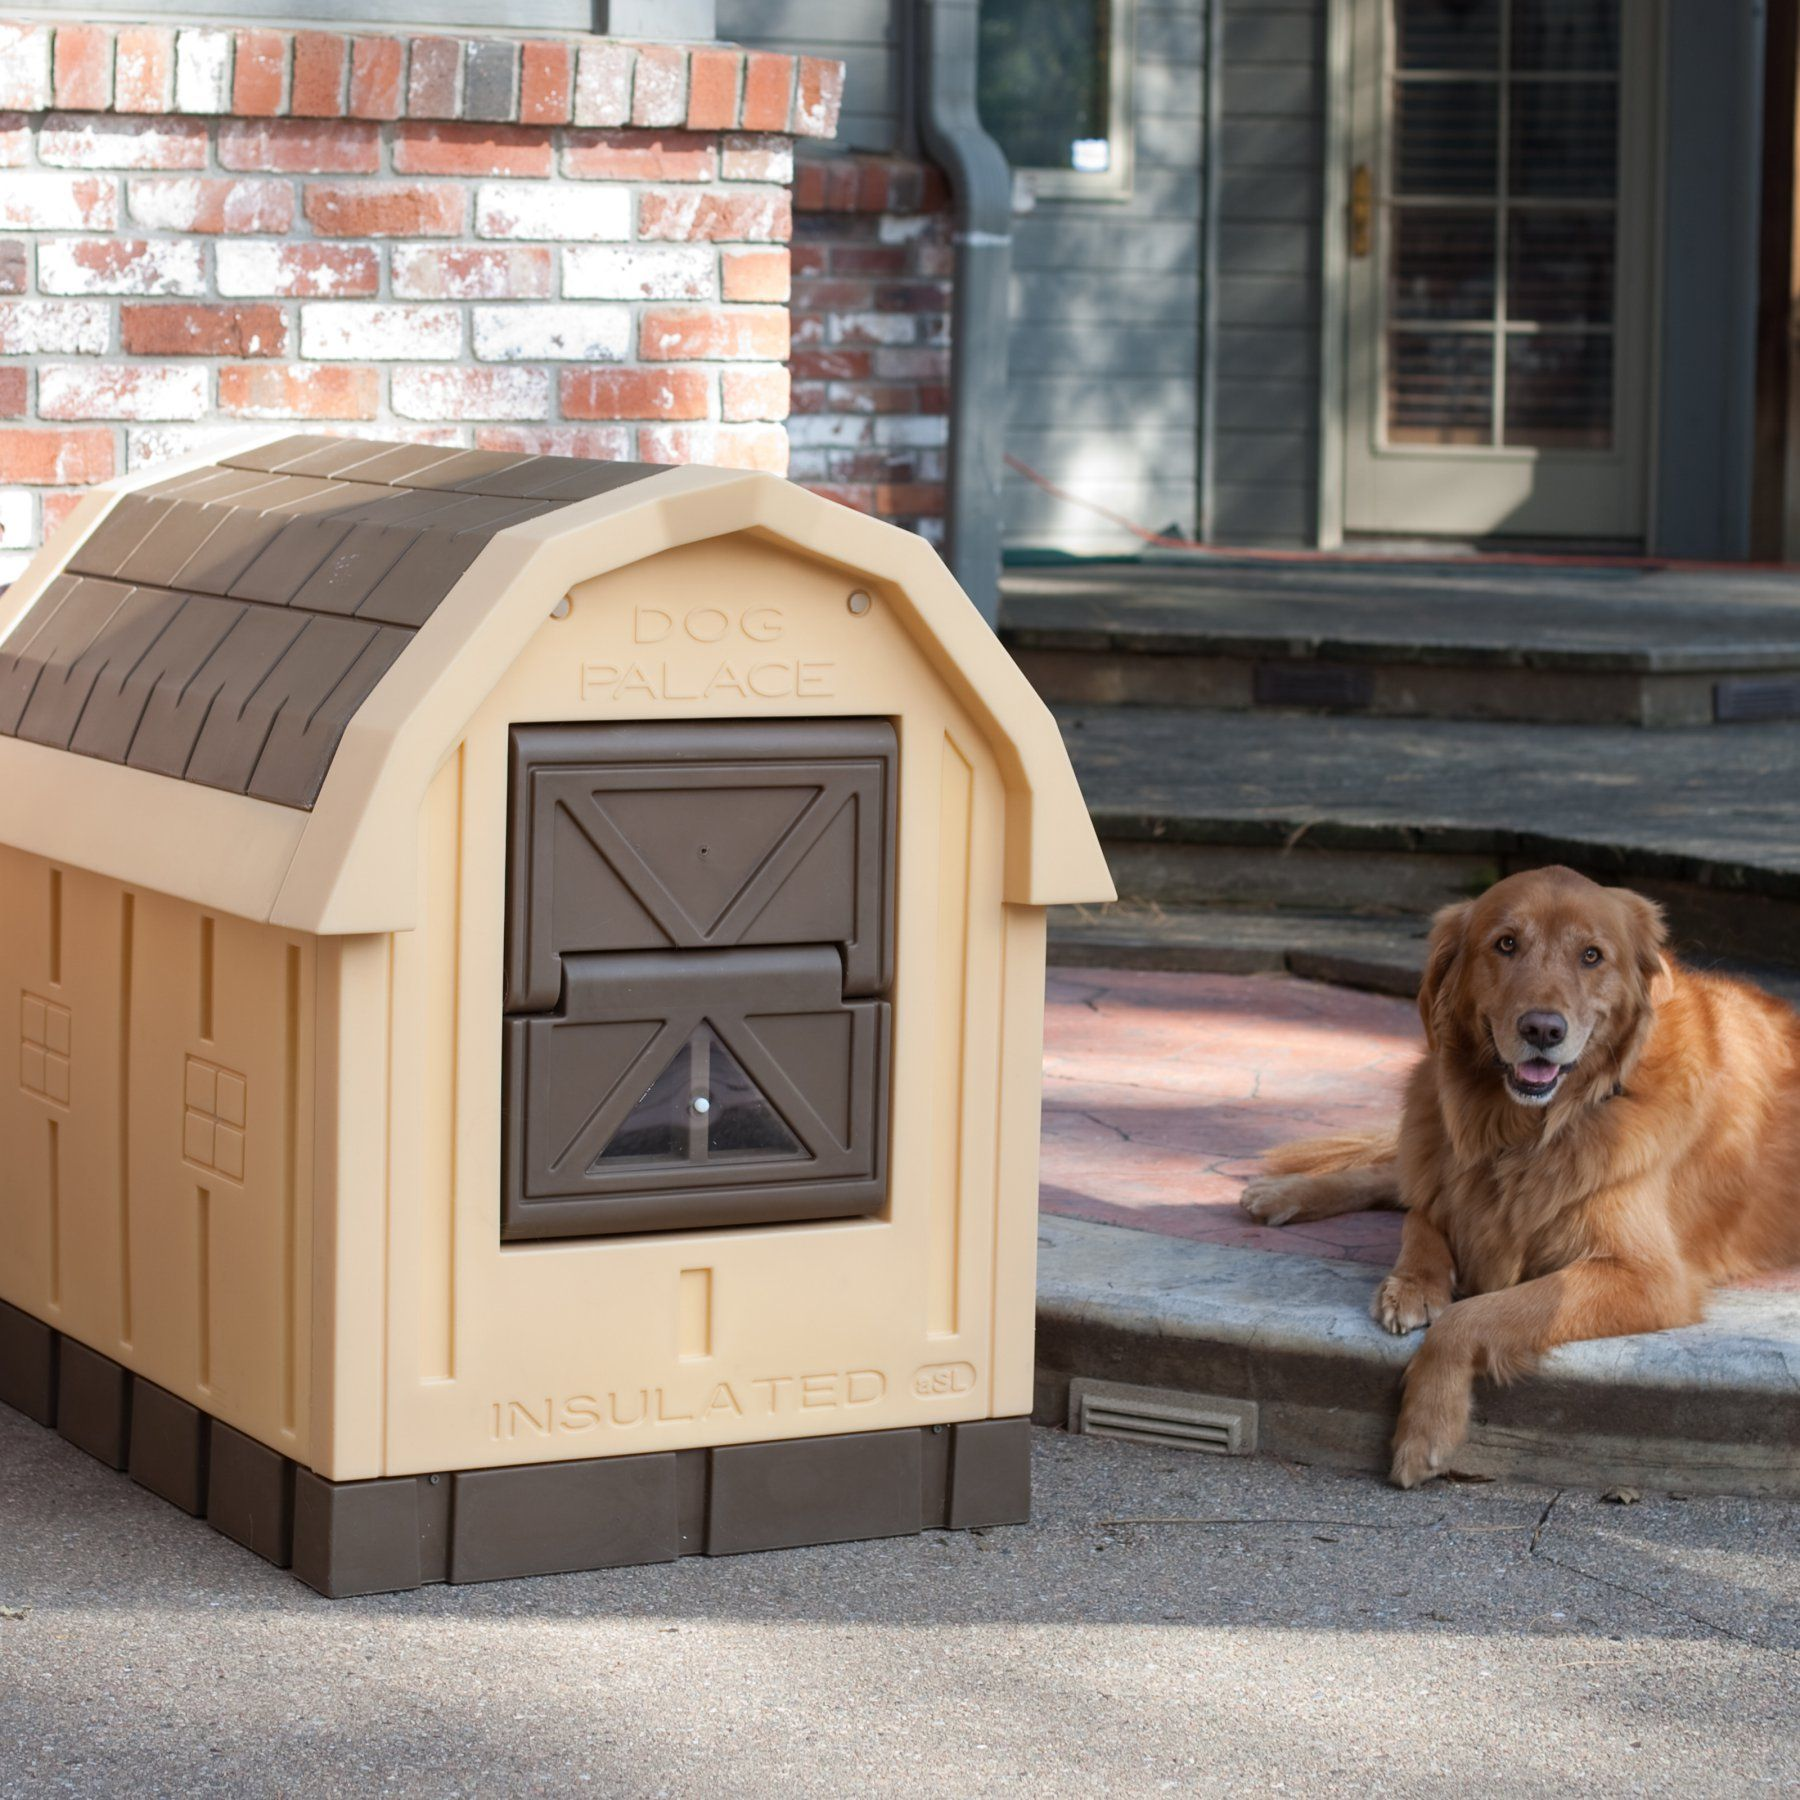 Dog Palace Insulated Dog House Dp20 Dp 20 Cool Dog Houses